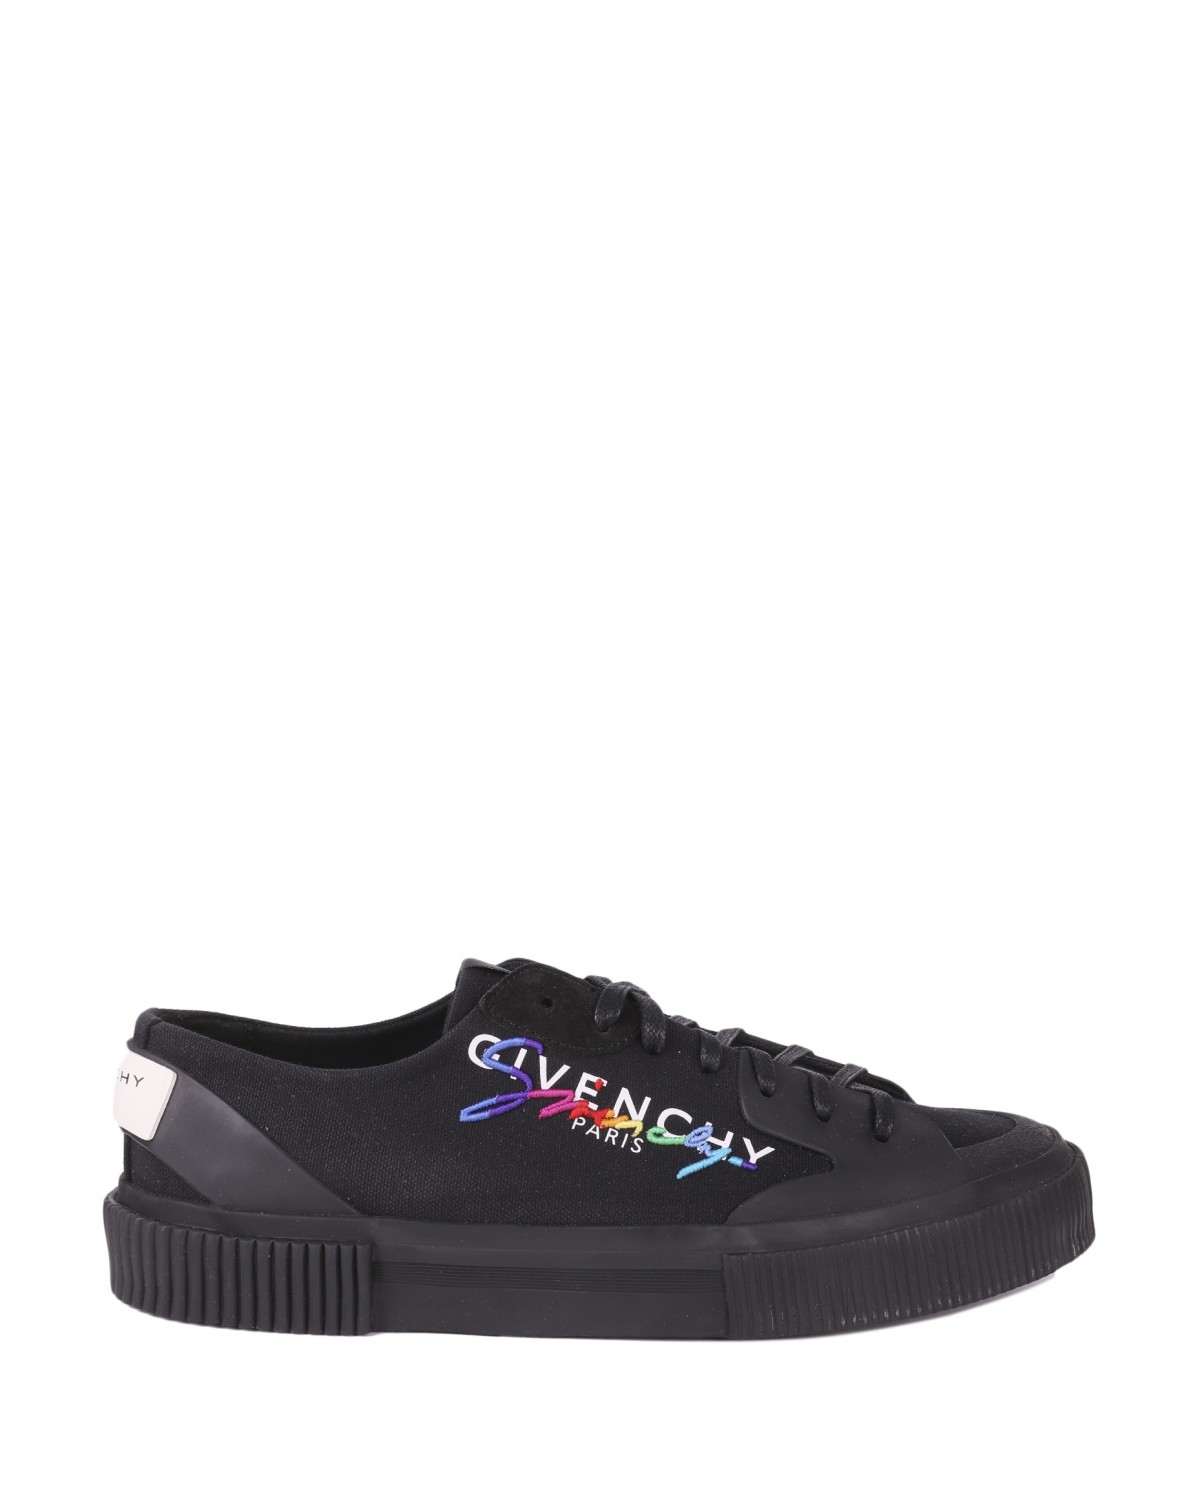 Givenchy multicoloured low sneakers